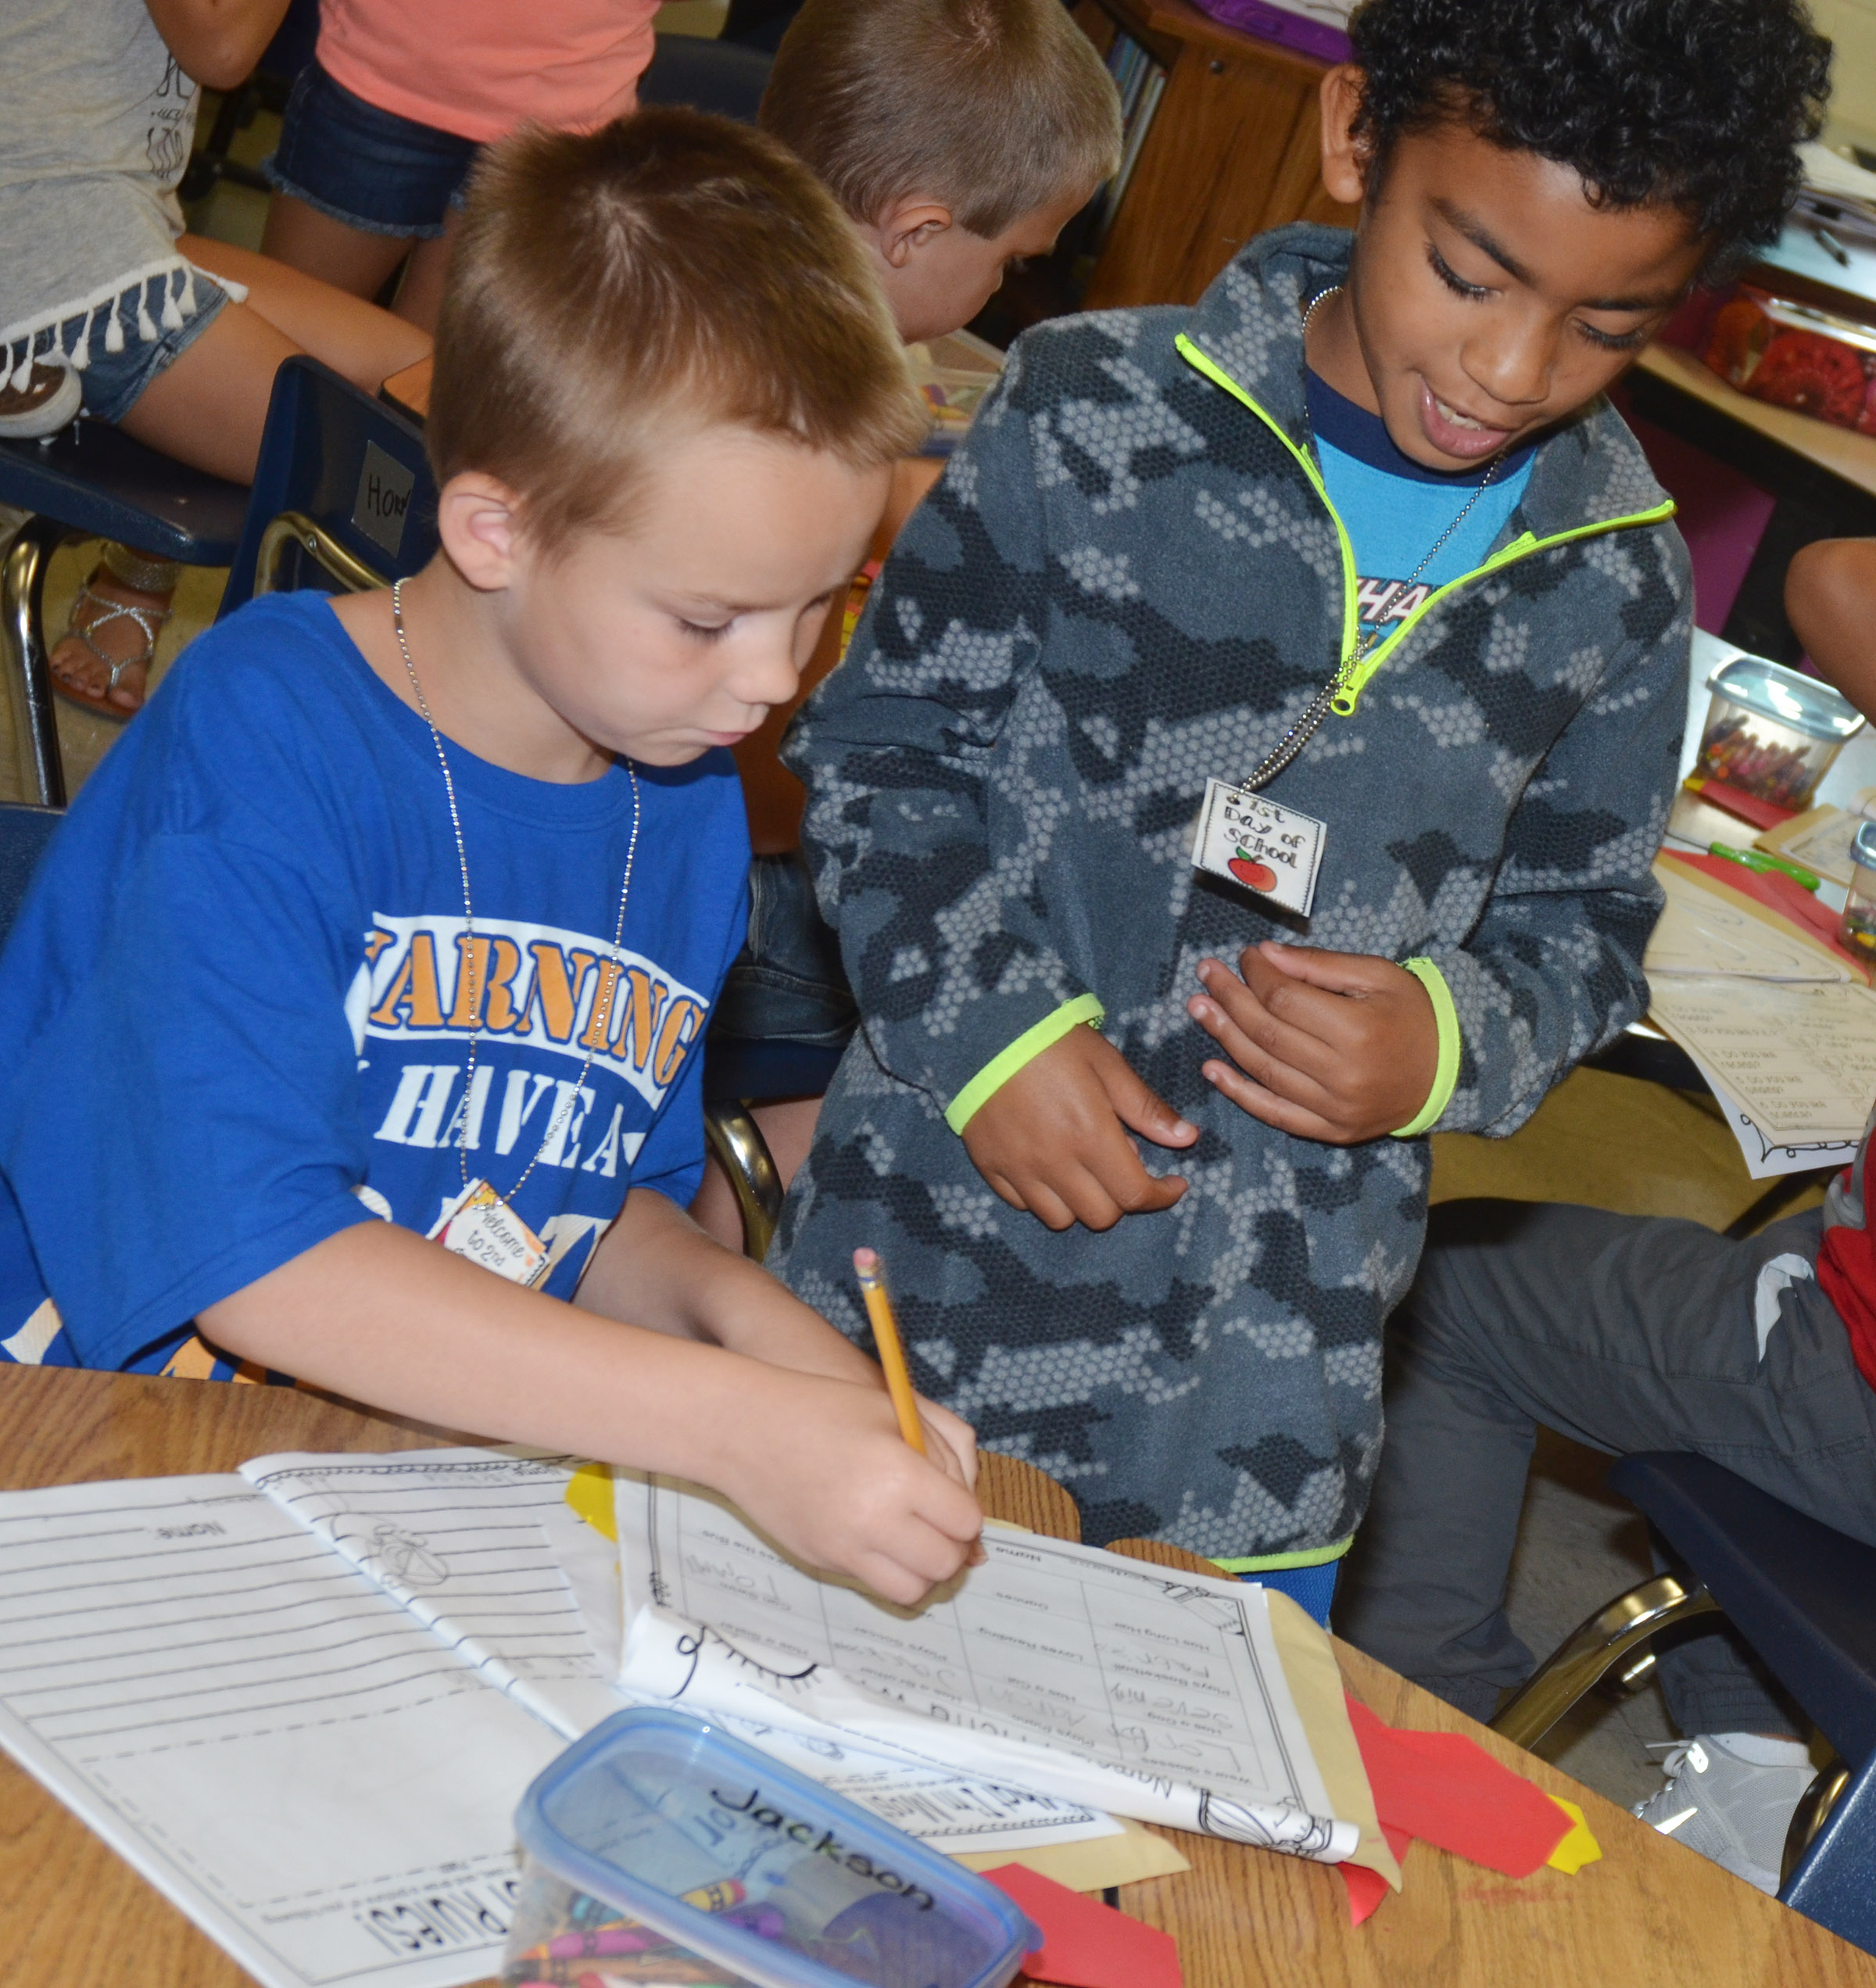 CES second-graders Jackson Bates, at left, and Enoch Smith sign each other's worksheets as they get to know each other.